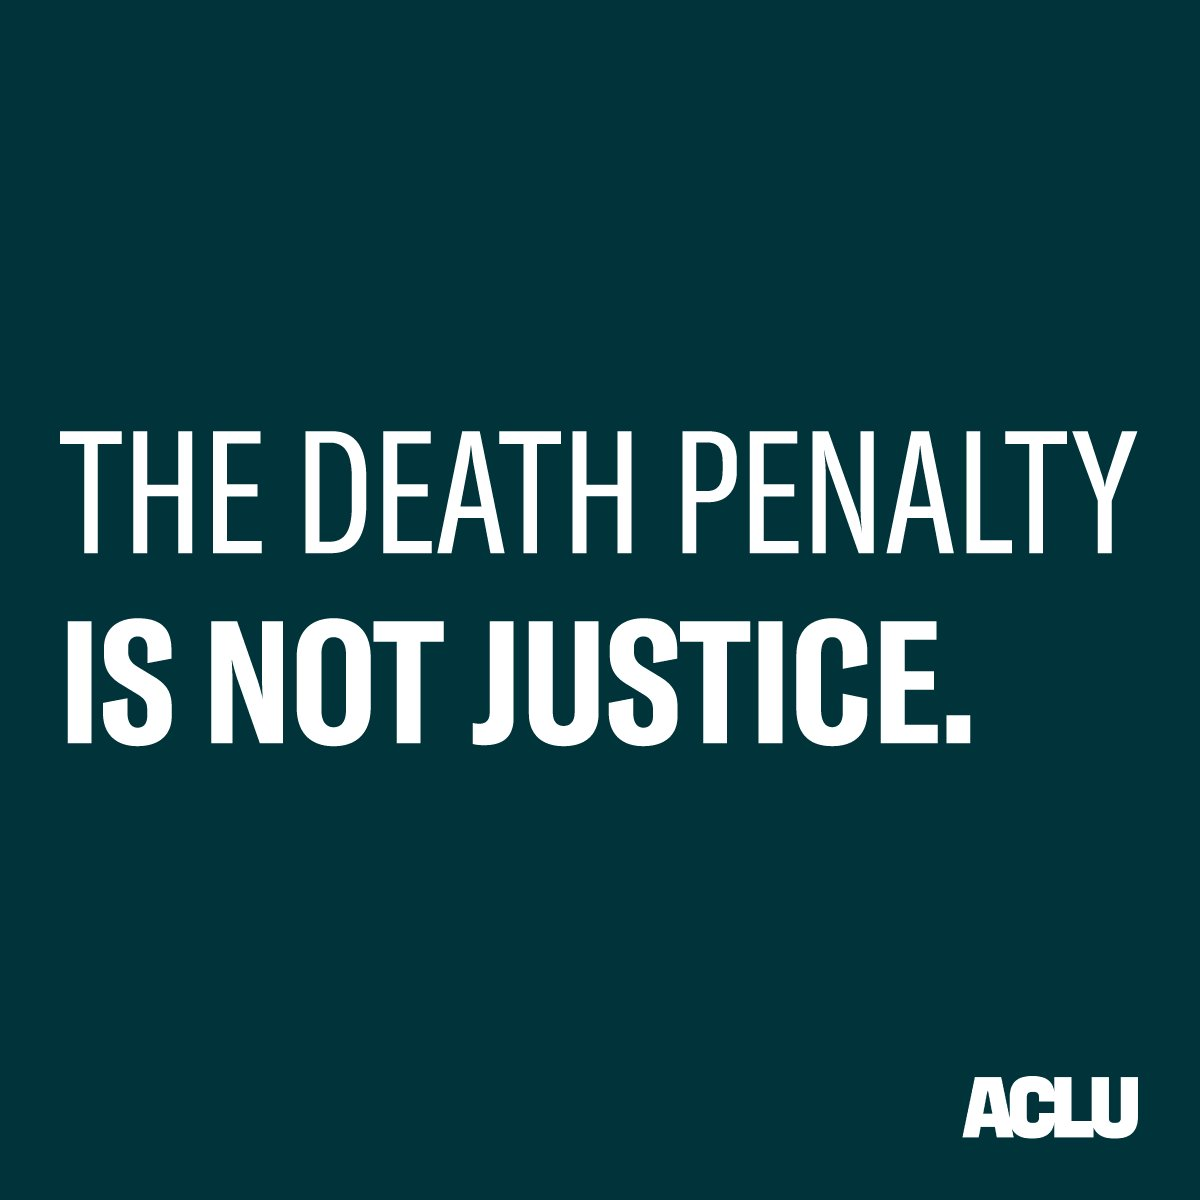 REMINDER: The government shouldn't have the license to execute anyone.